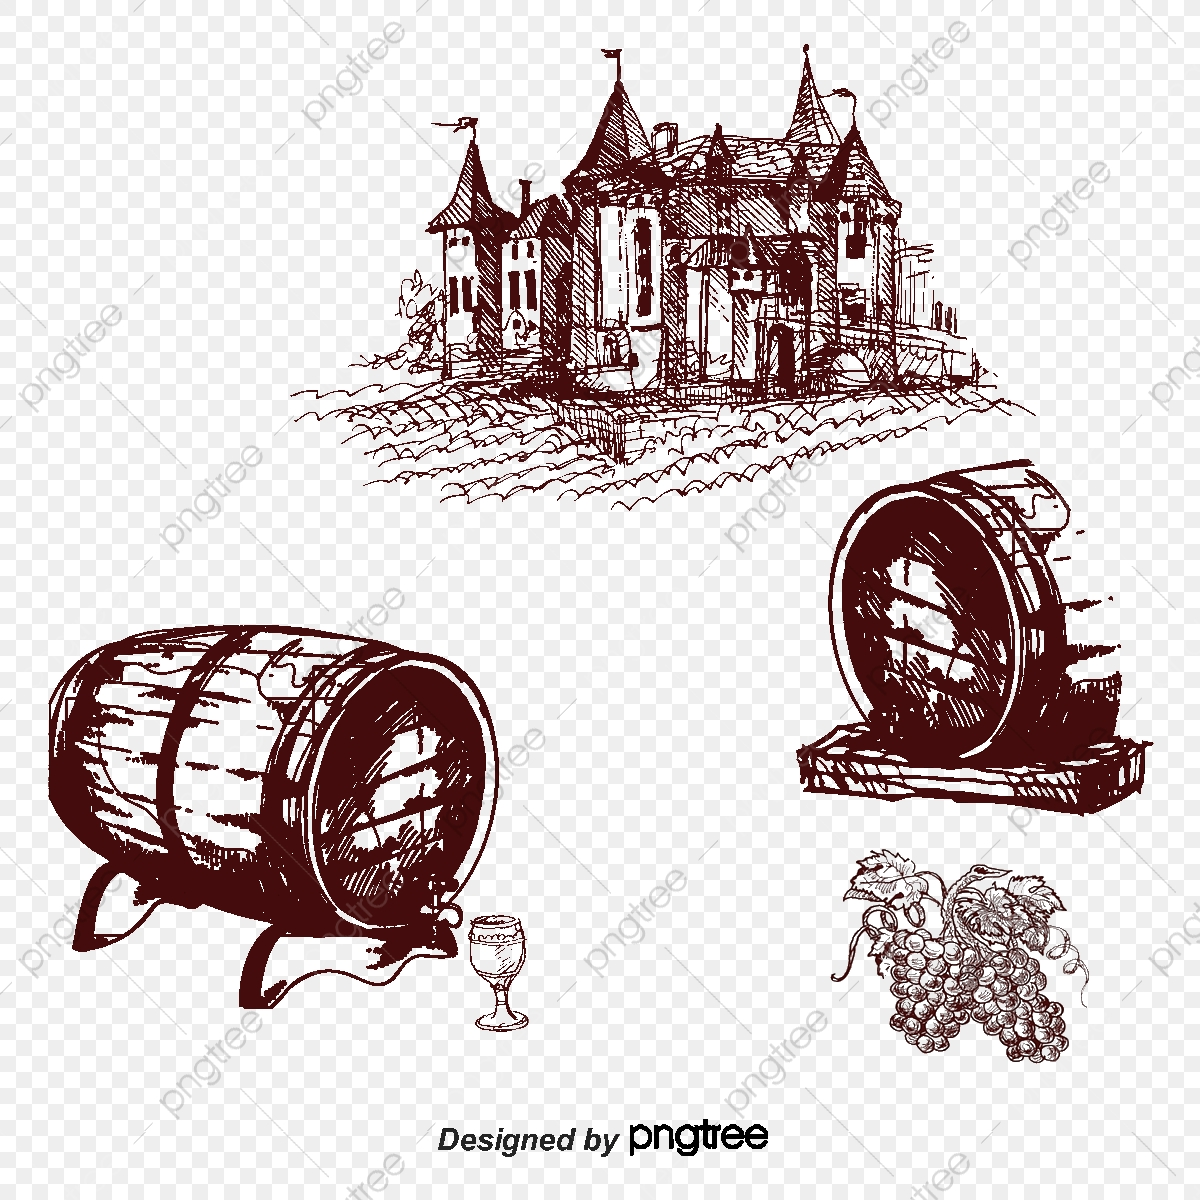 Wine Barrel, Wine Vector, House, Vector Architecture PNG and